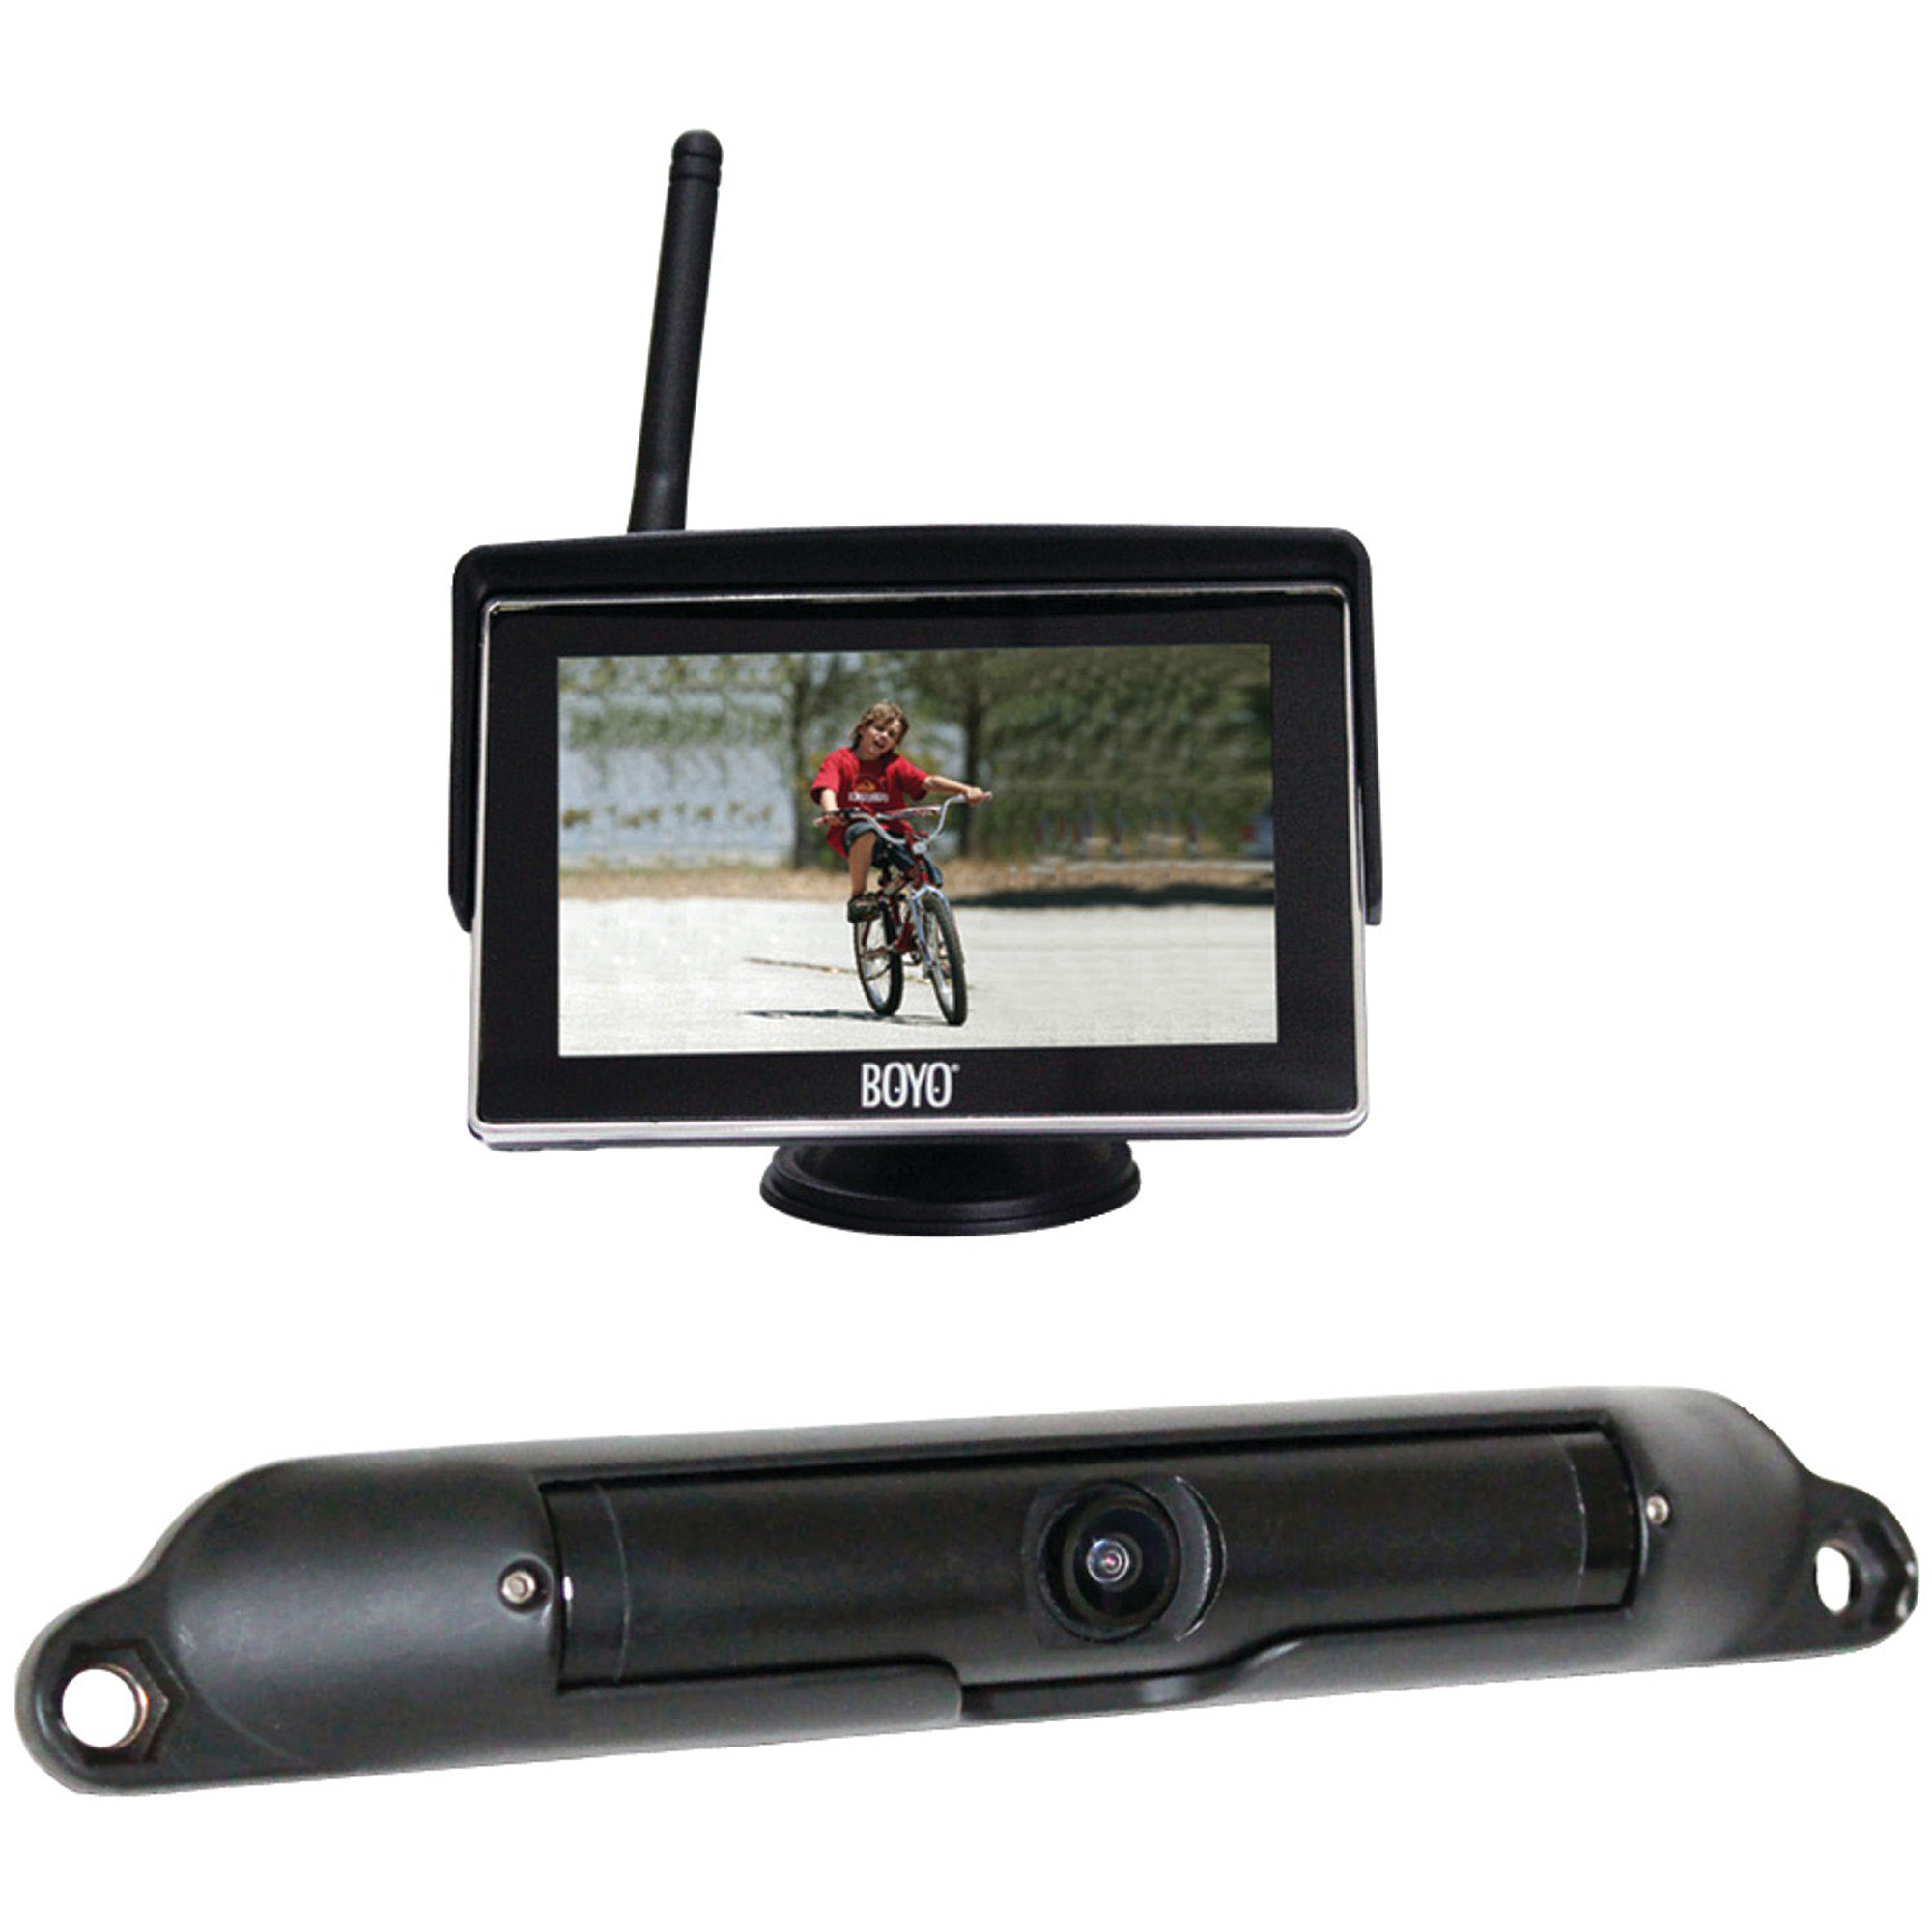 "Boyo VTC424R WiFi High-Resolution Rearview Camera System with 4.3"" LCD Monitor"